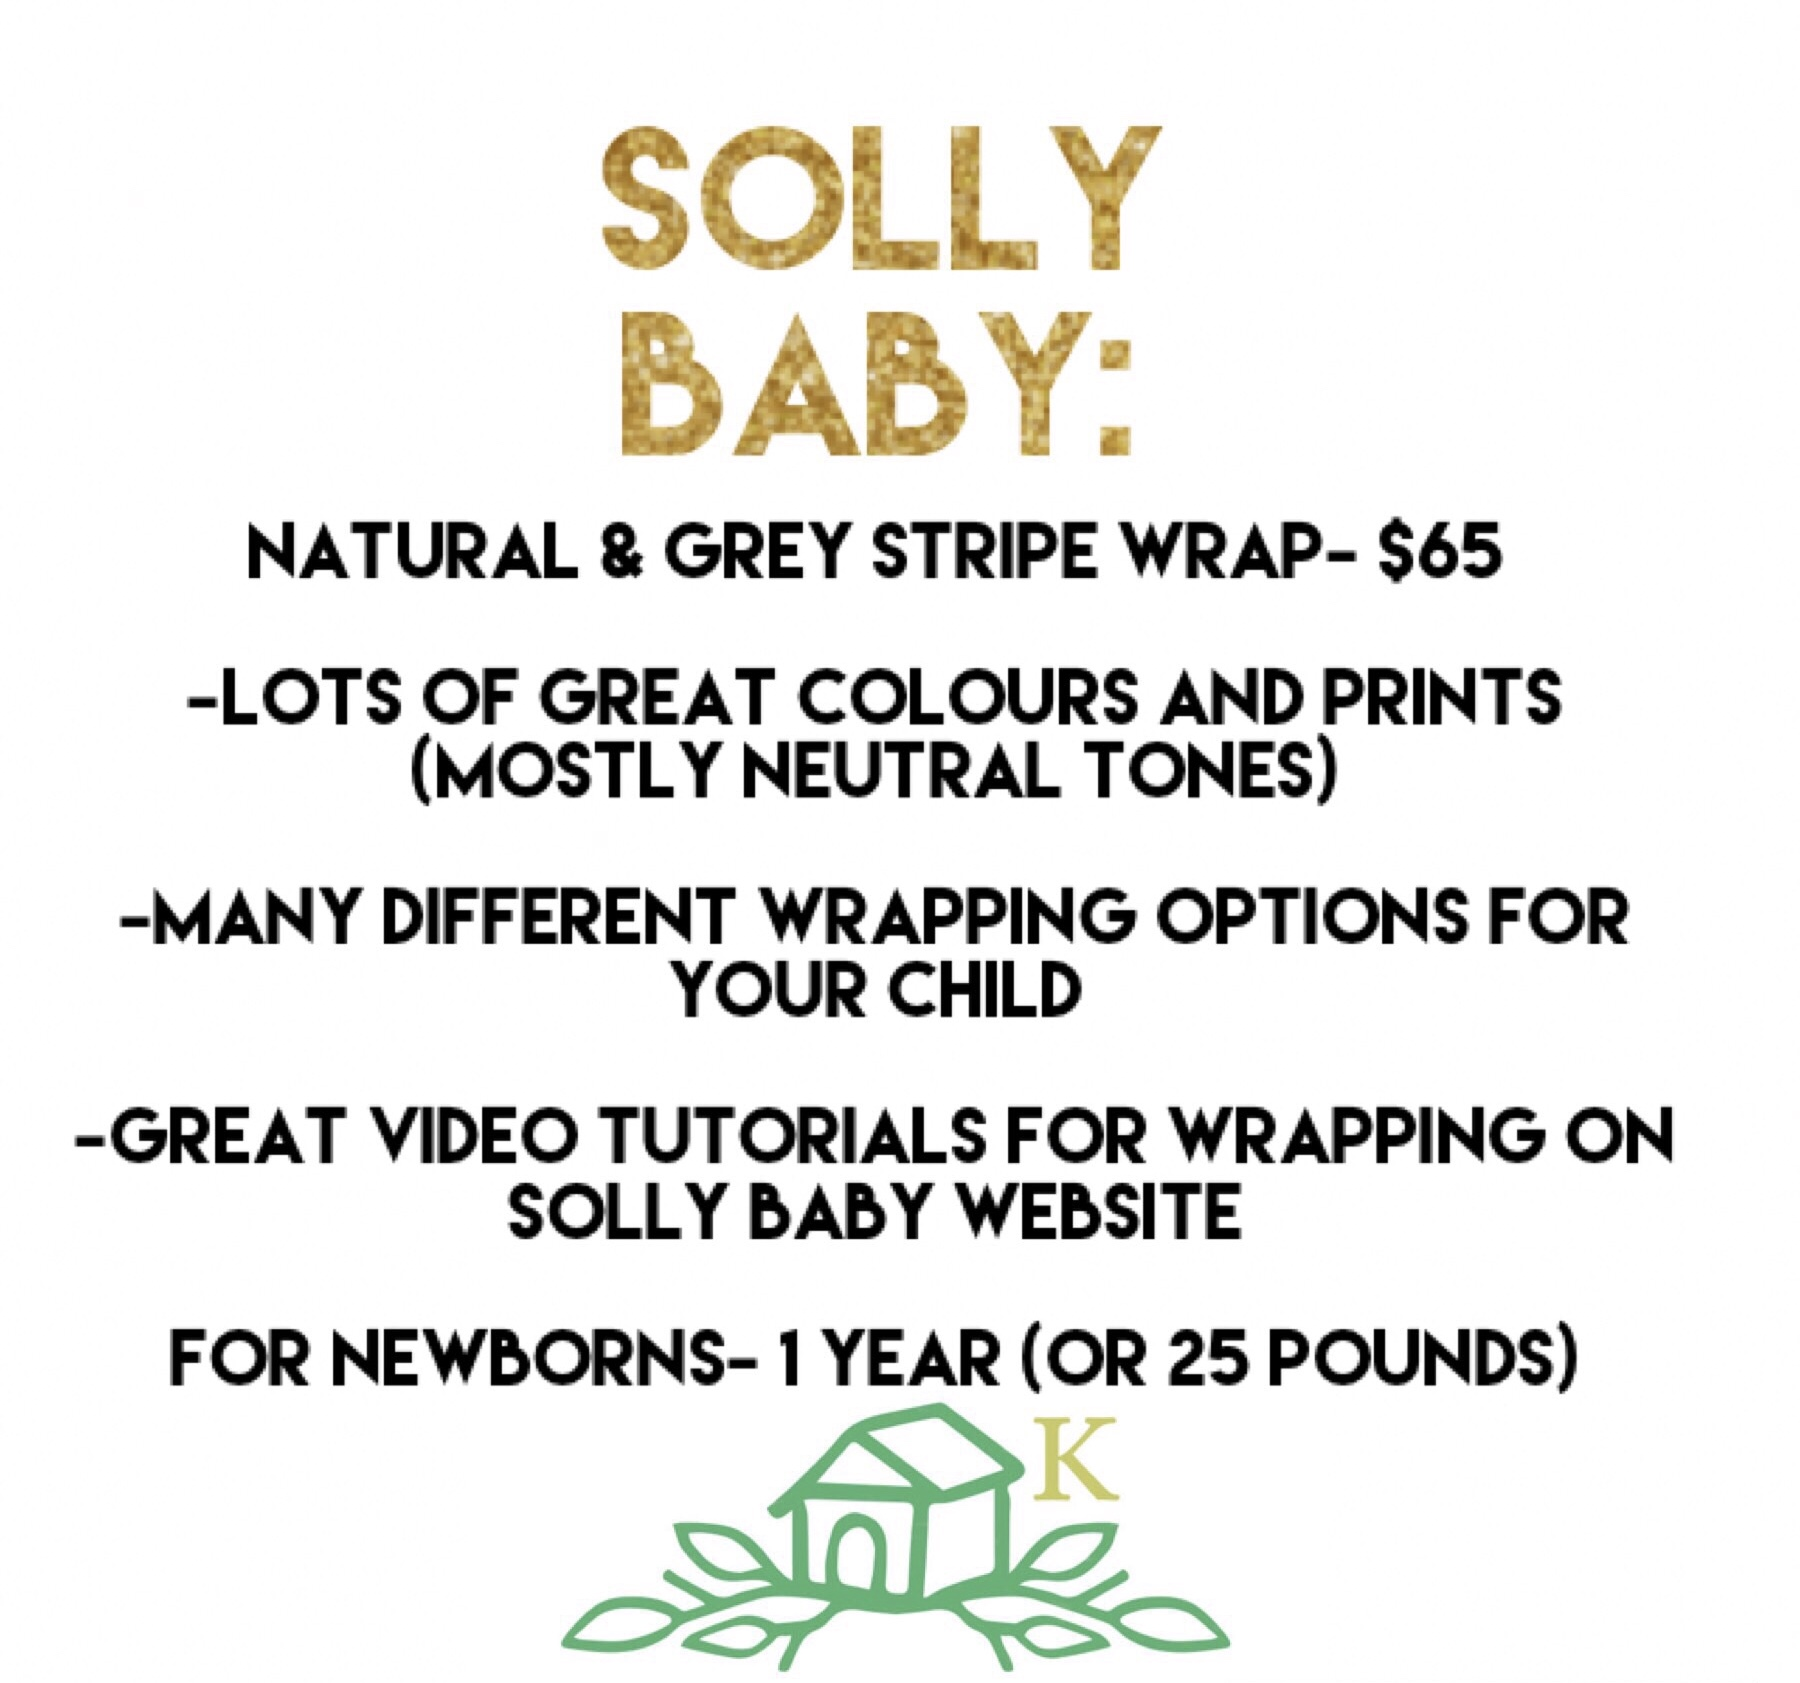 purchase here:  https://shop.sollybaby.com/collections/wraps/products/natural-grey-stripe